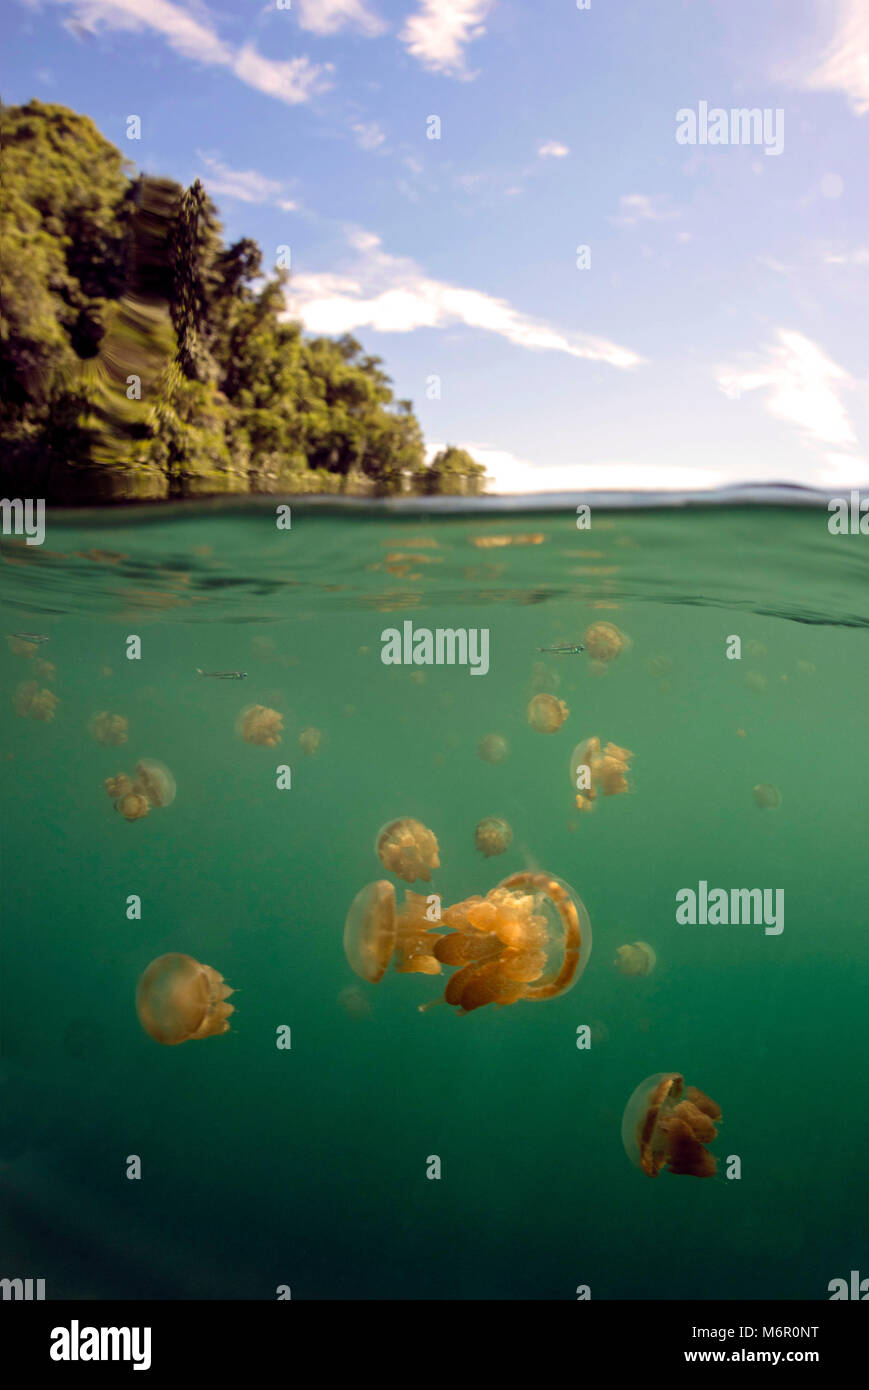 Jellyfish lake. Picture was taken in the Celebes sea, Indonesia - Stock Image